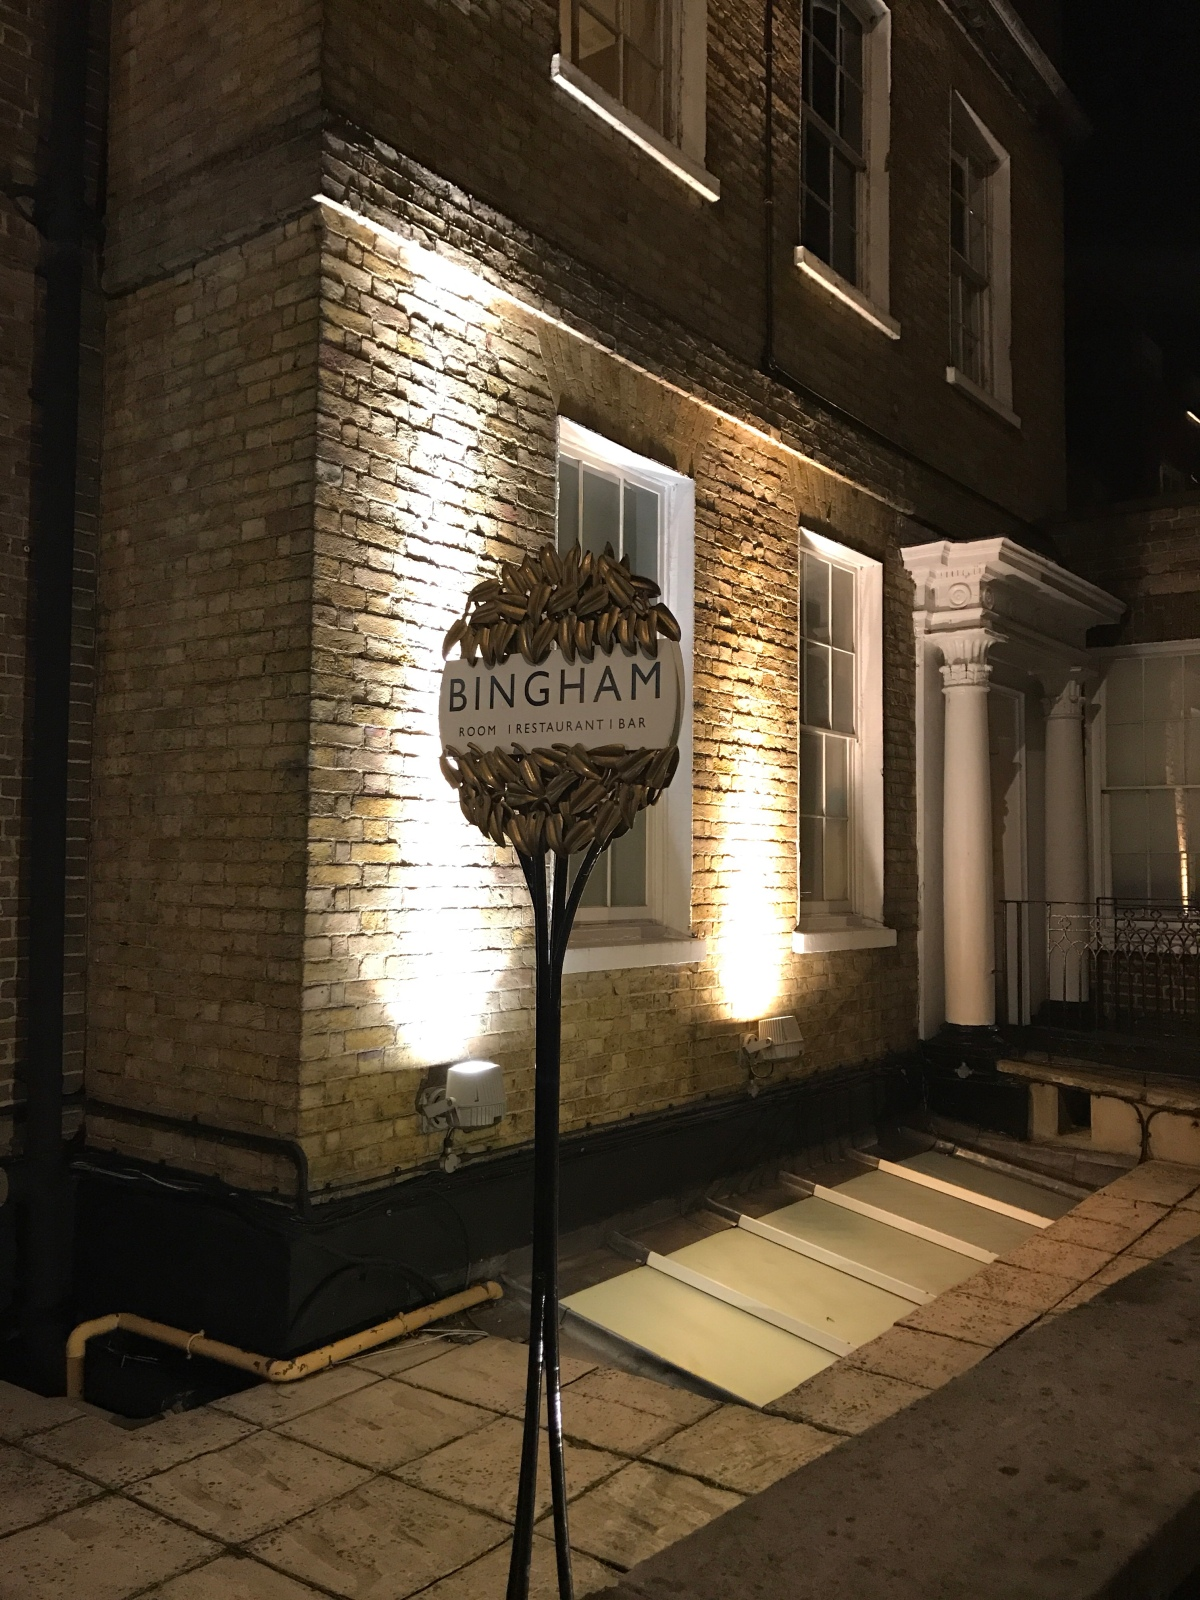 Restaurant review: The Bingham, London